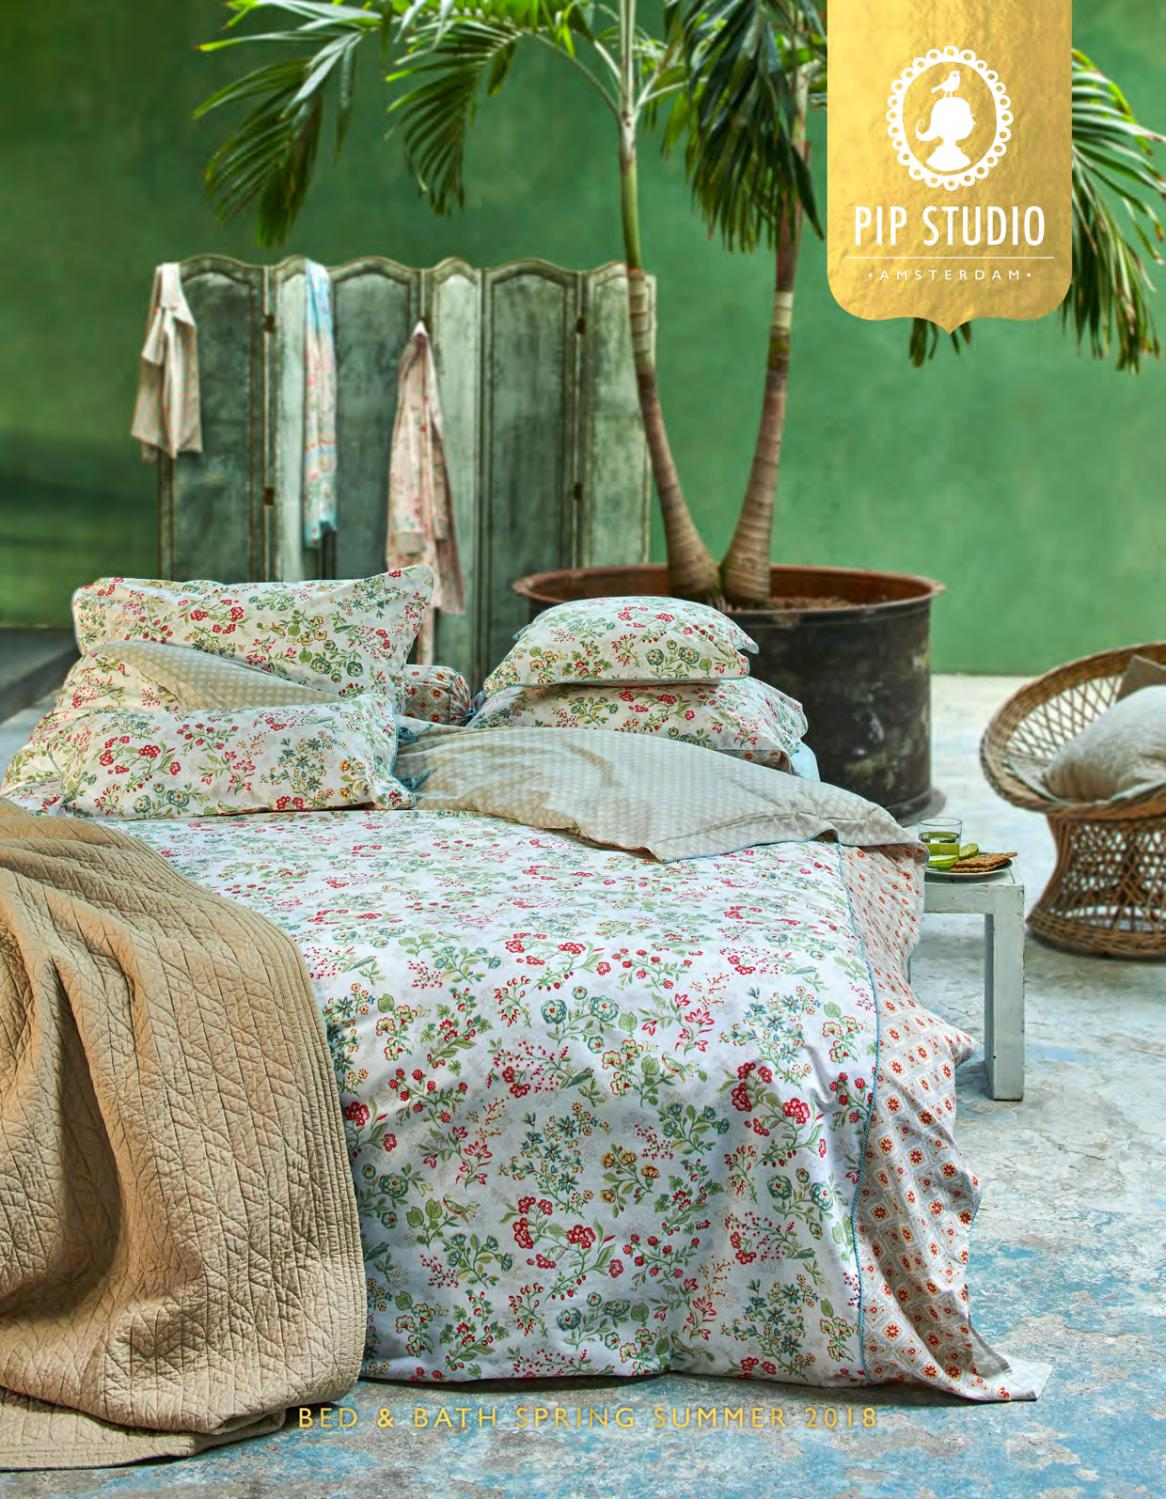 Bettwäsche Pip Sale Pip Studio Bed Bath Spring Summer 2018 By Pip Studio Issuu